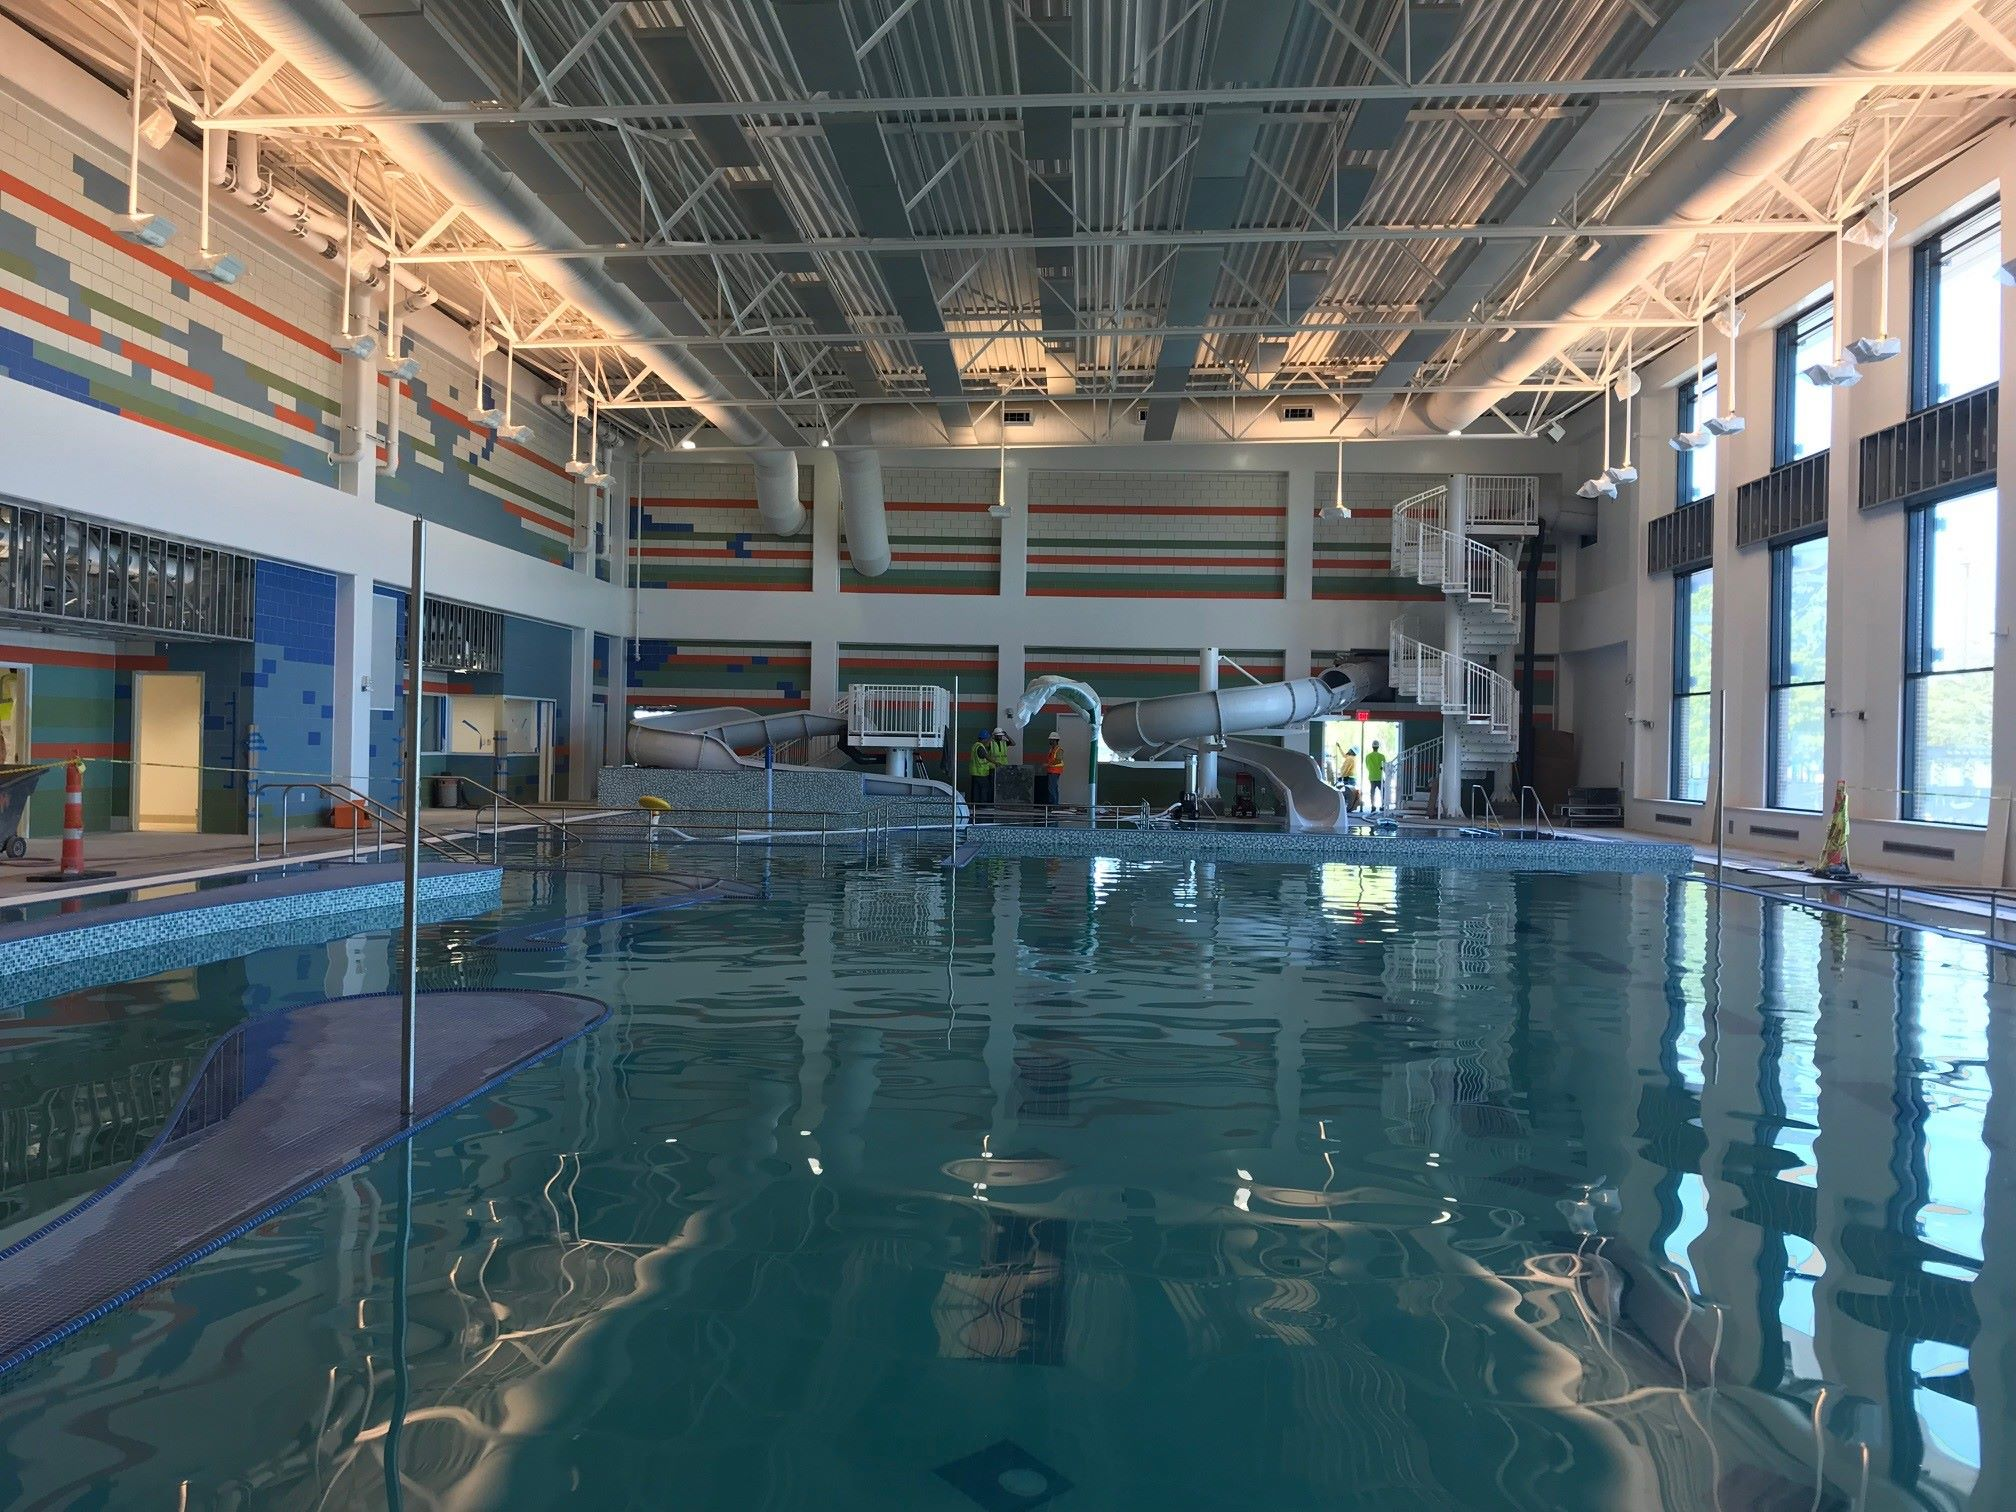 Indoor pool with slide  New pool and water slide opening at Carpenter Rec Center in Plano ...